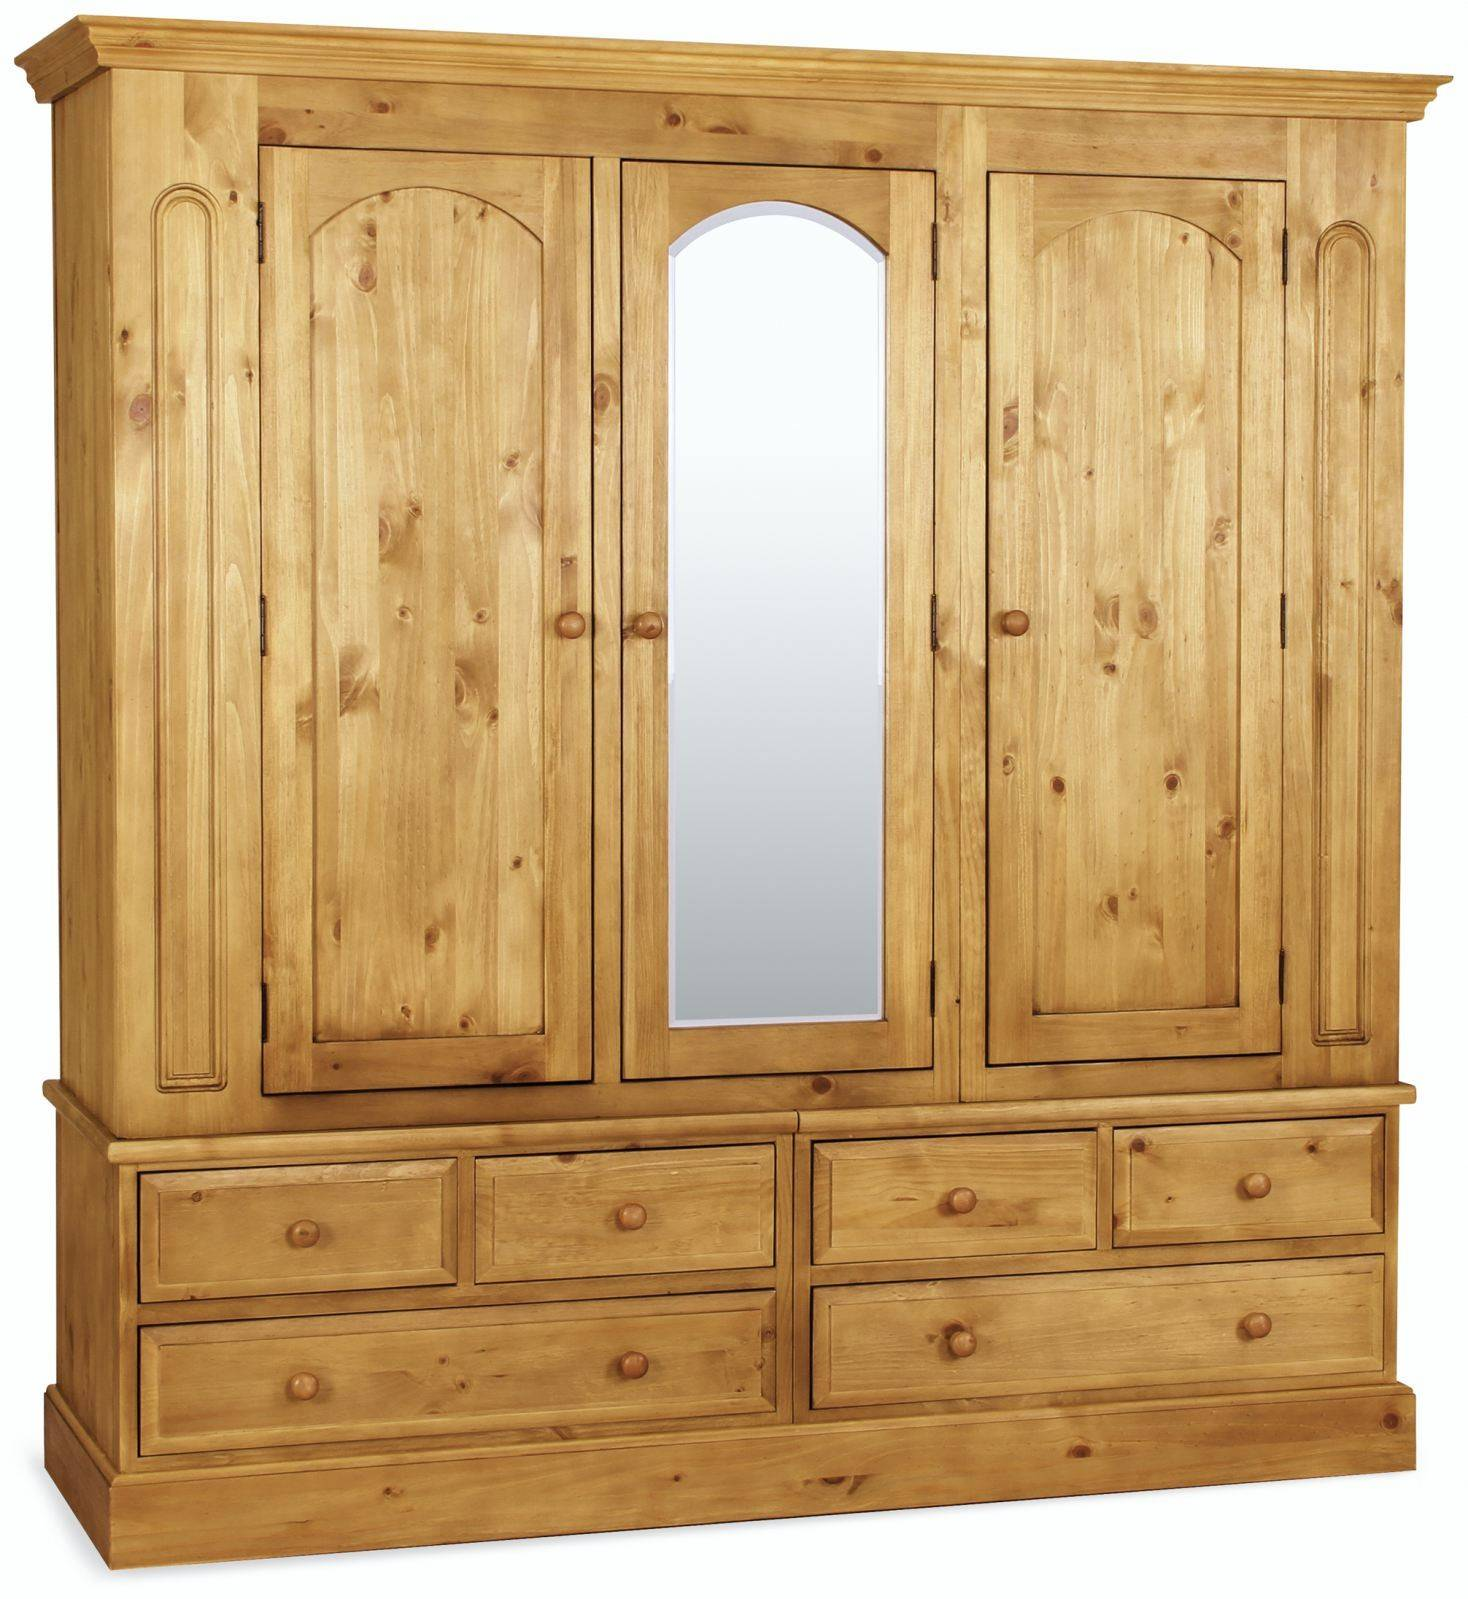 Country Pine Triple Wardrobe With Mirror Traditional Furniture Hills Furniture Store